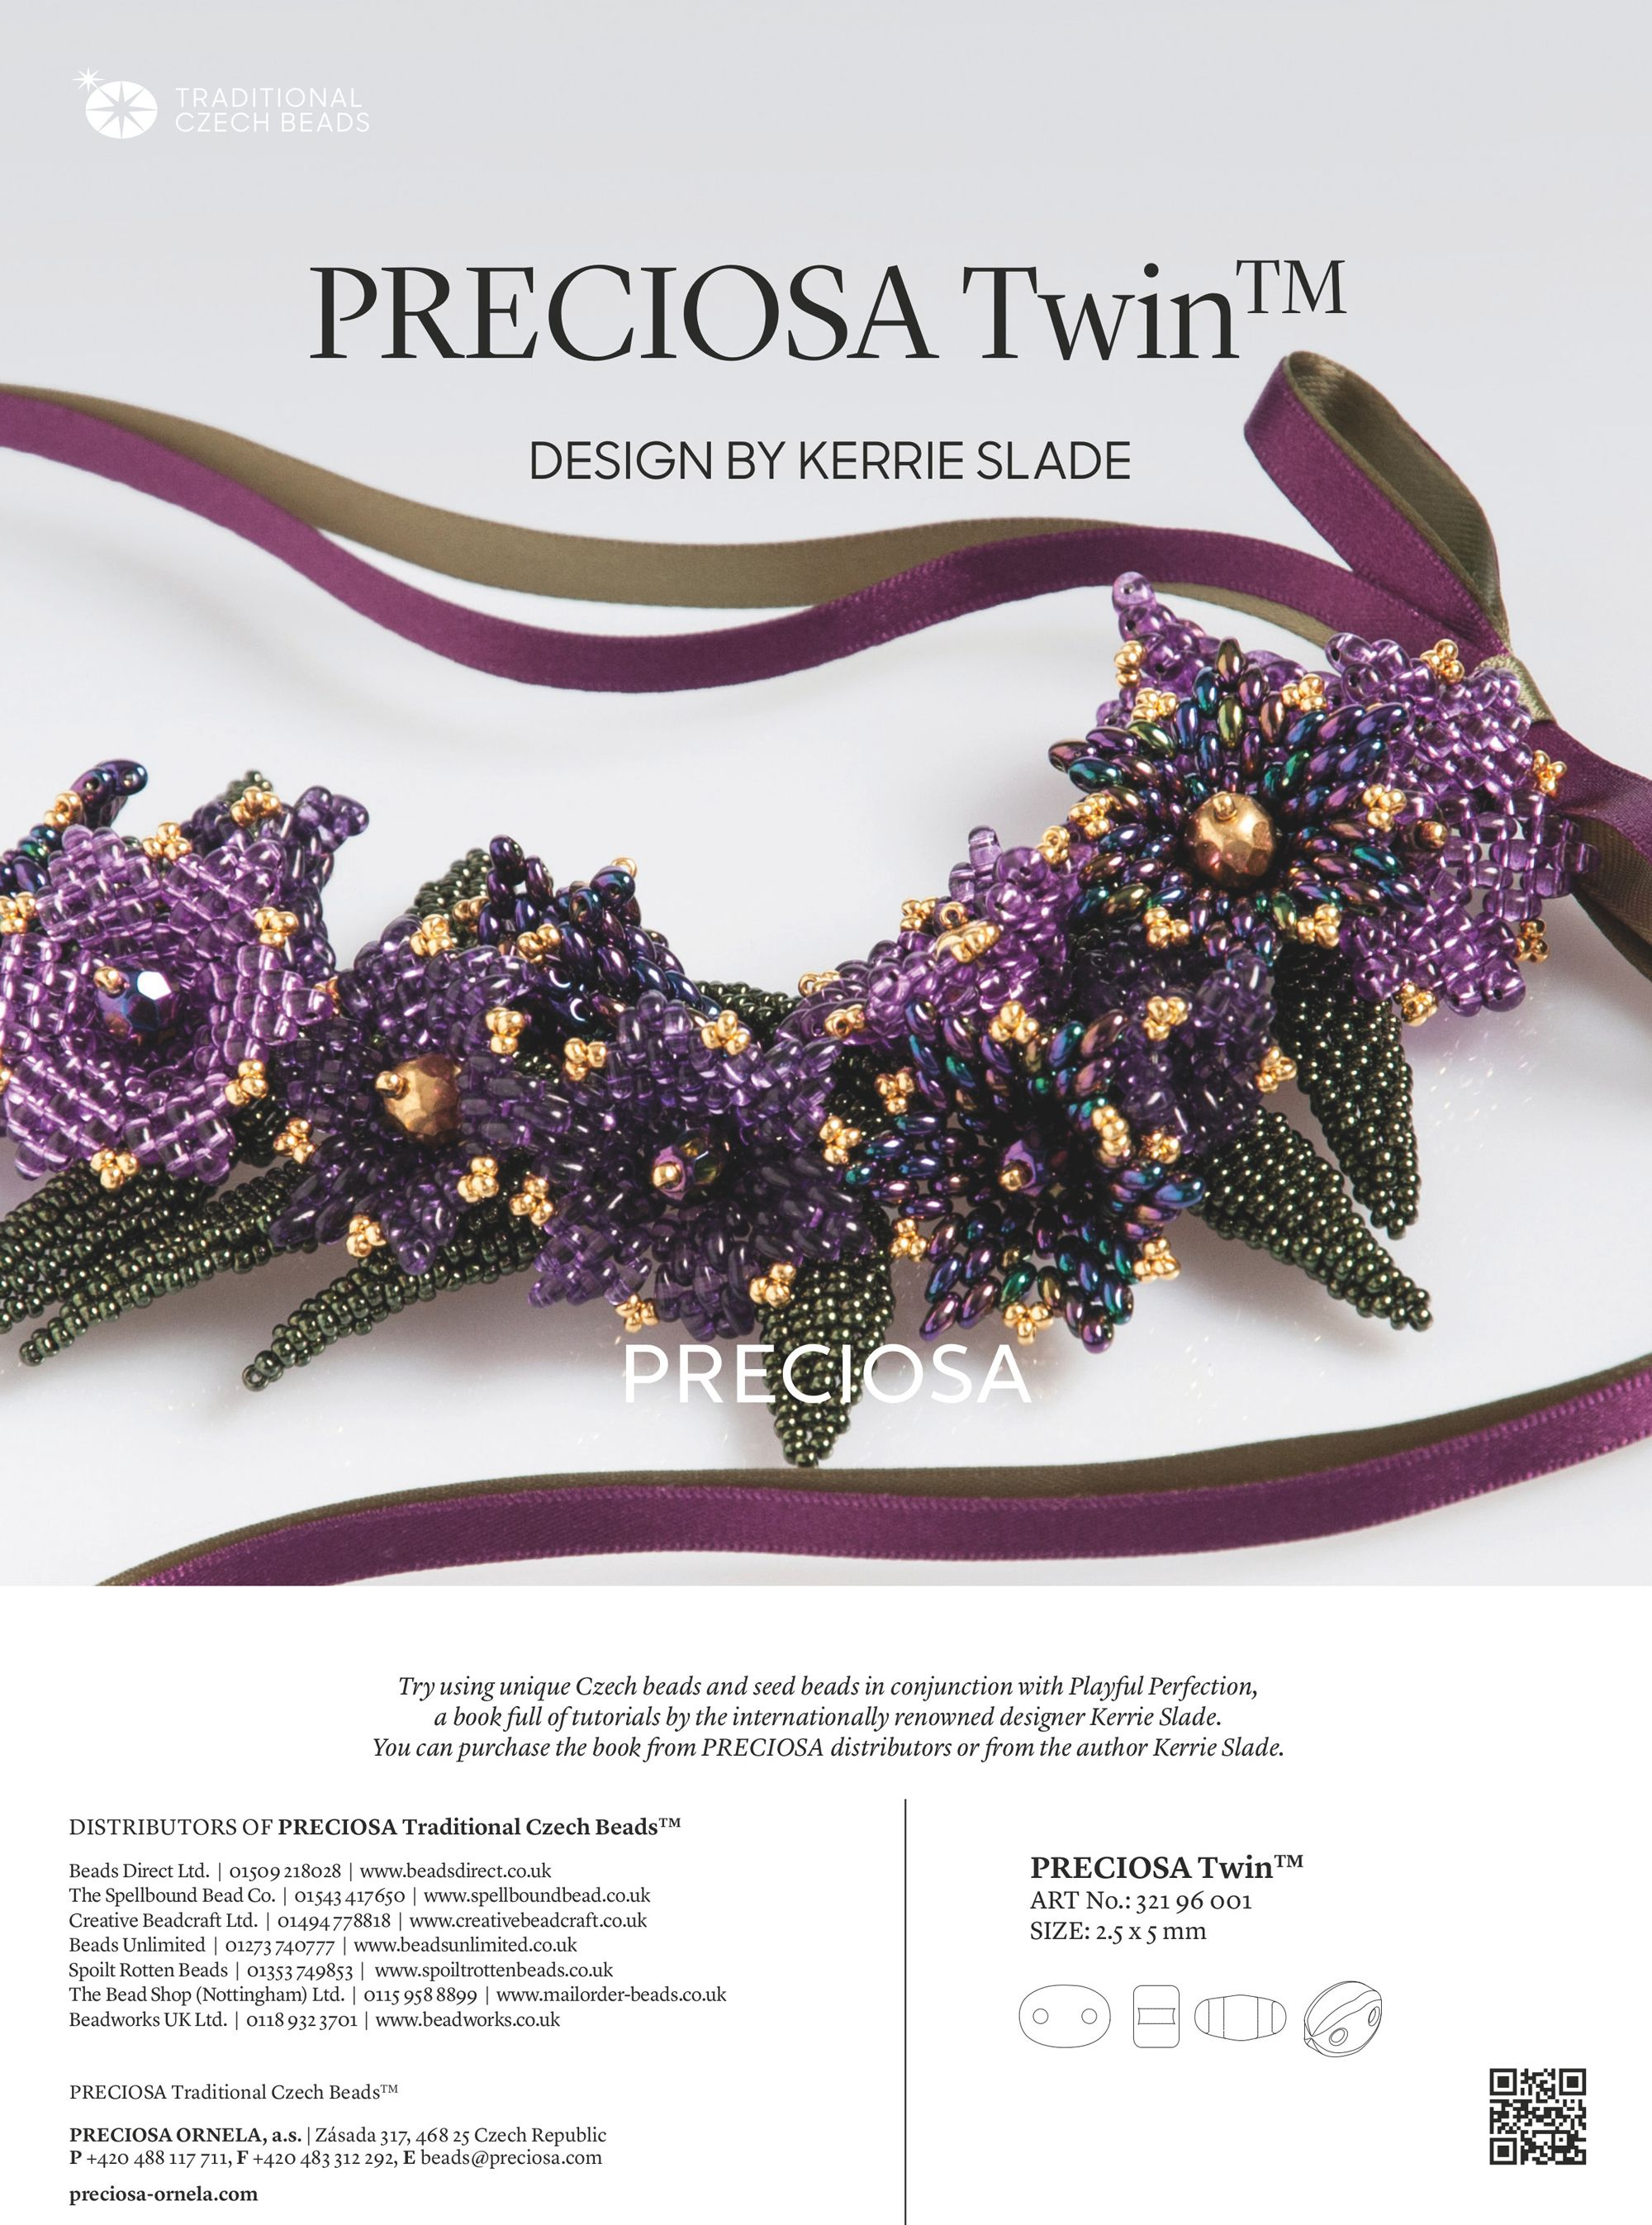 tropical twins bracelet used in the preciosa ornela advert in bead and jewellery magazine issue 81